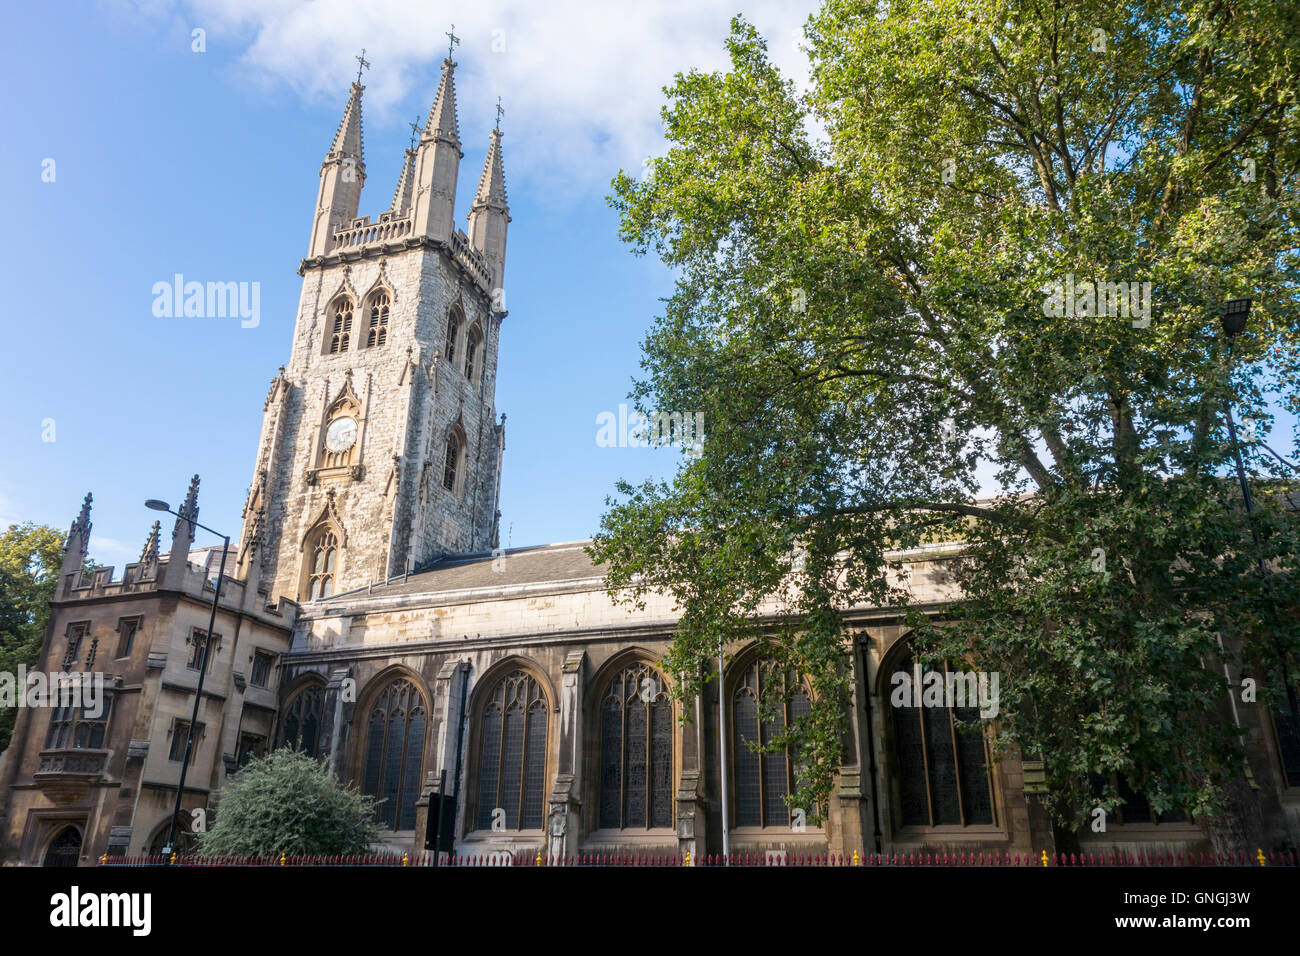 St Sepulchre's Church. 17th-century church, Holborn Viaduct, City of London, UK - Stock Image